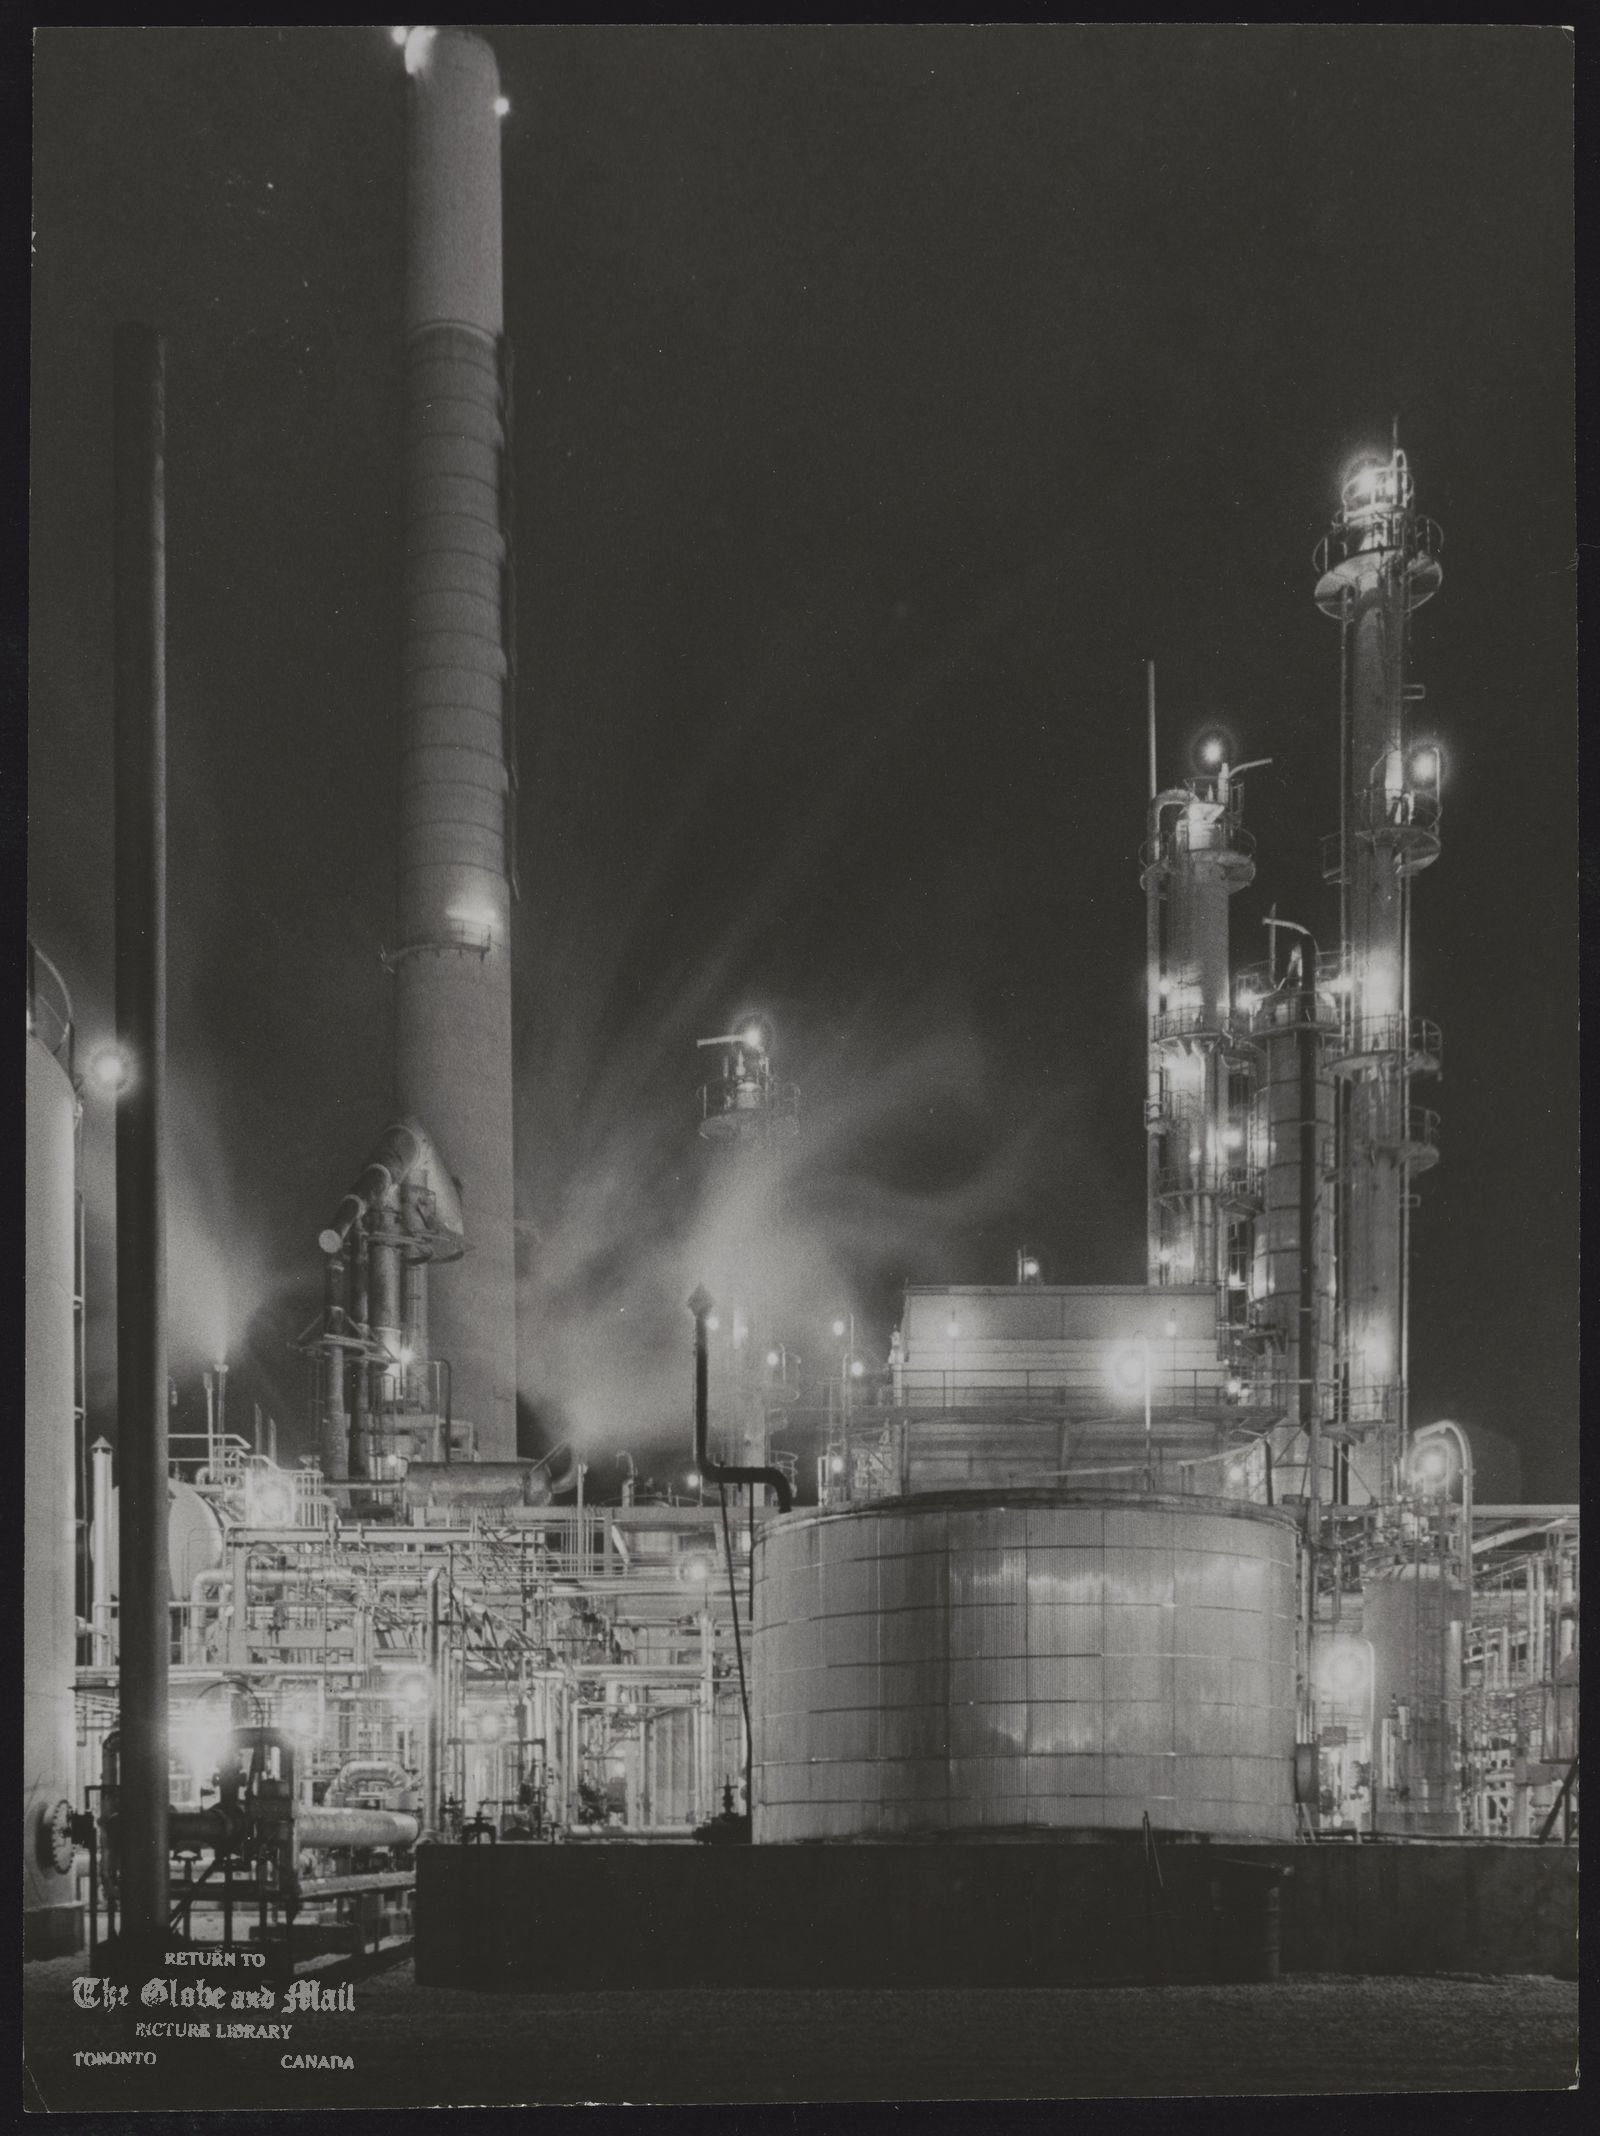 SHELL OIL COMPANY OF CANADA For second year, Shell Canada Ltd. is marking Christmas time by adding extra lights to its already well-illuminated refinery property at Clarkson, west of Toronto.